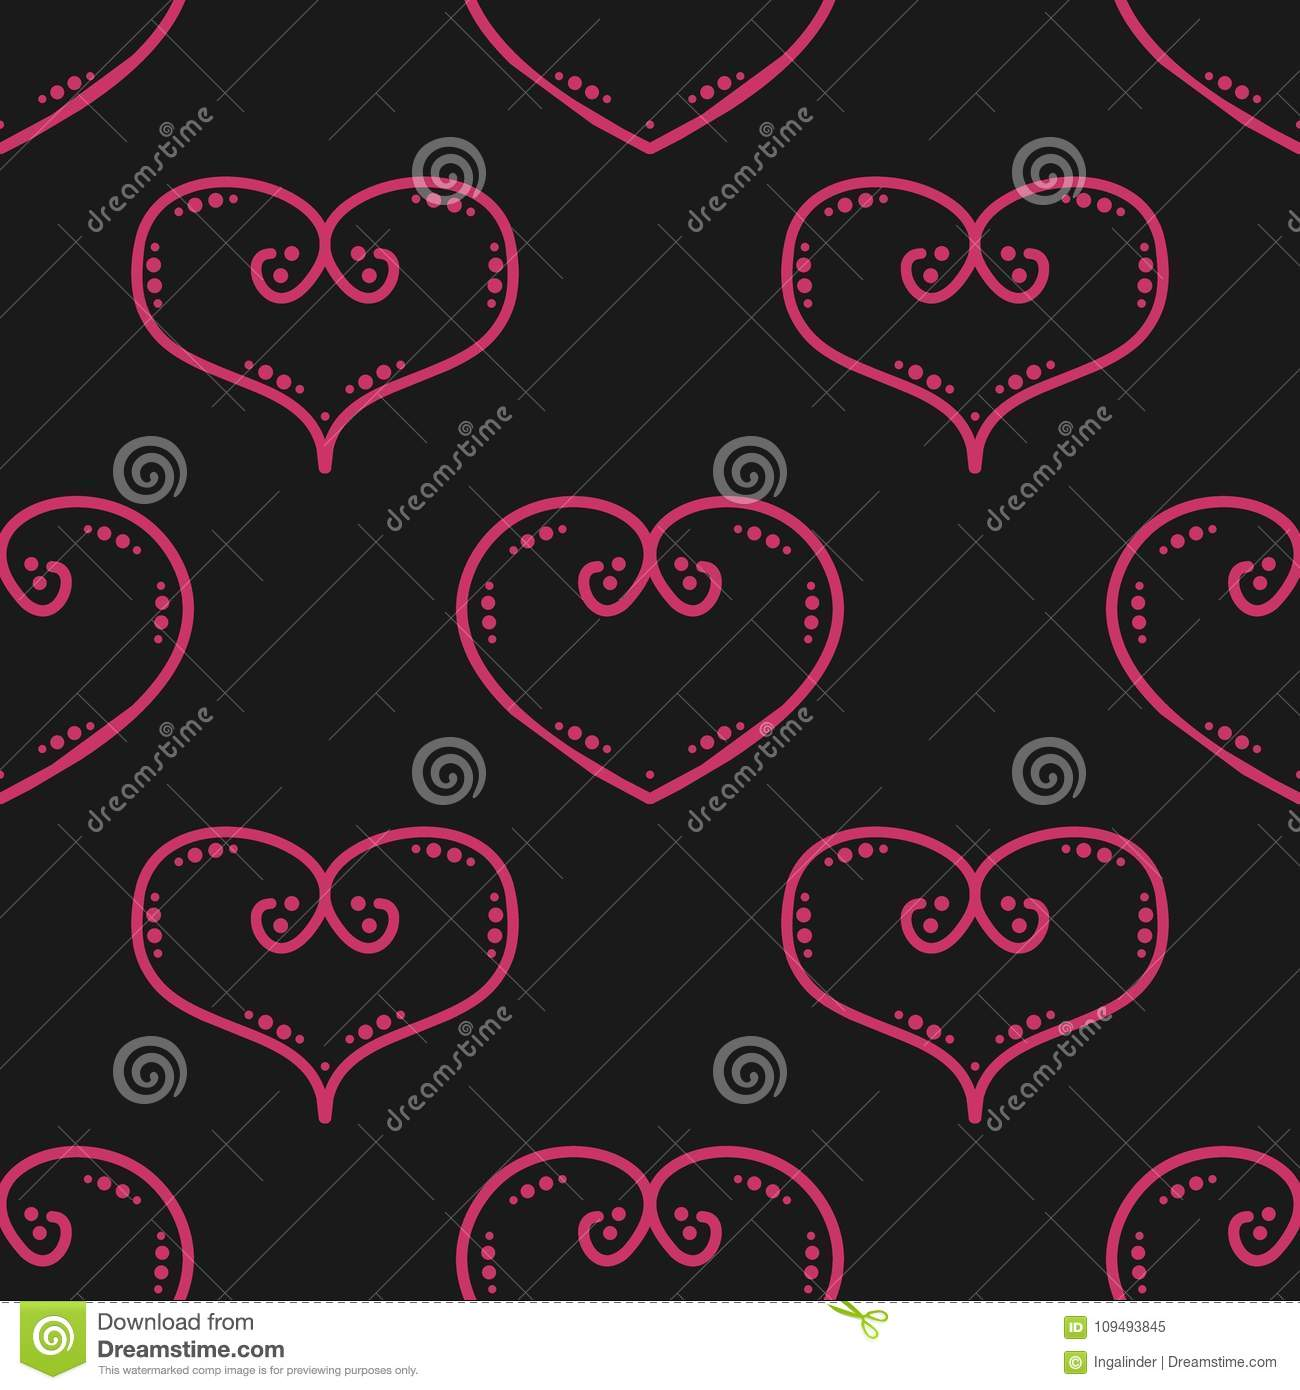 Tile Vector Pattern With Pink Hearts On Black Background